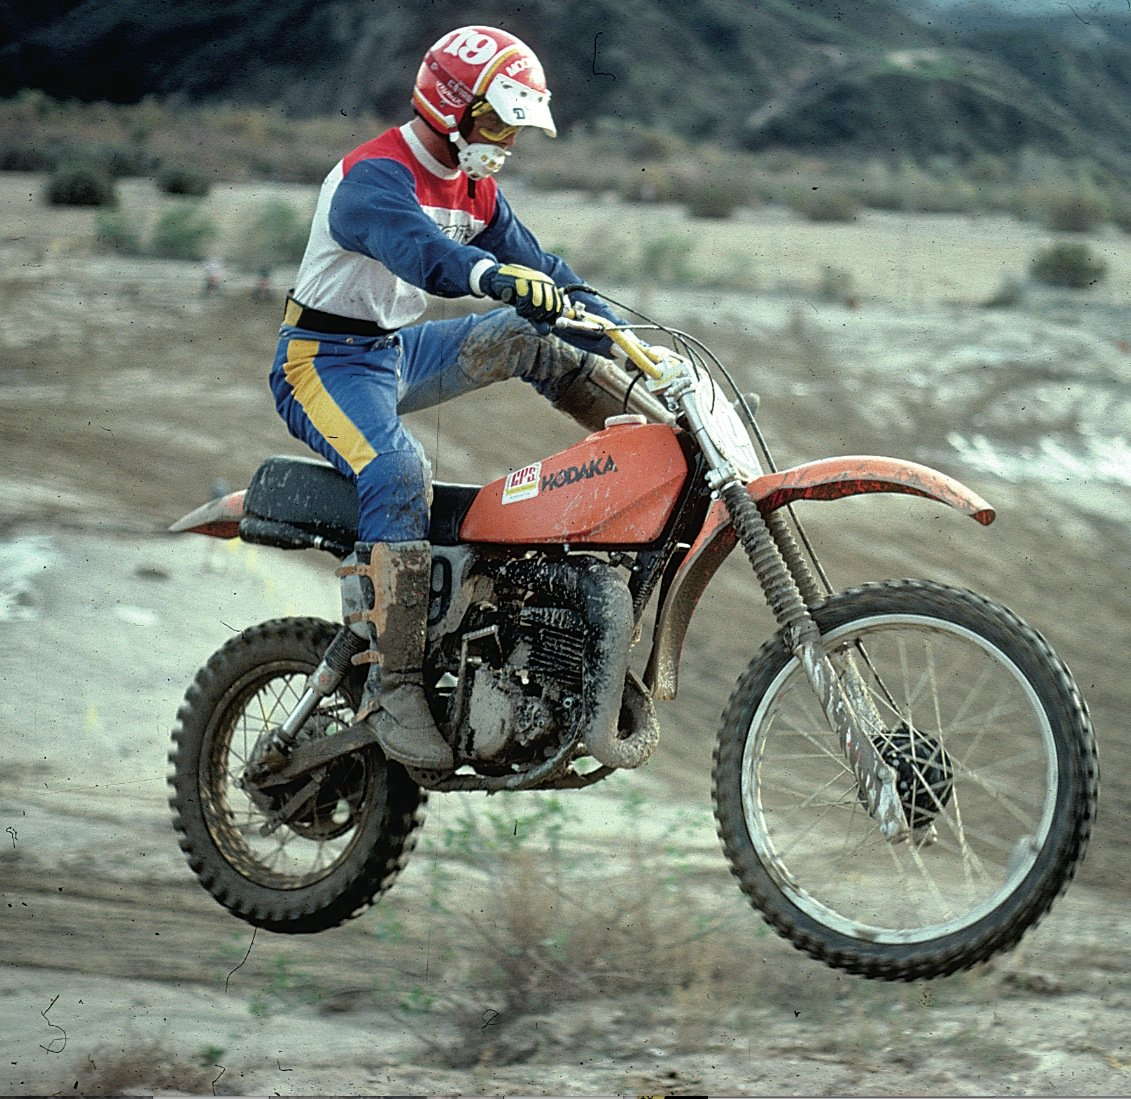 JODY'S RACING SCRAPBOOK: THESE SNAPSHOTS COULD BE YOURS|Motocross Action Magazine